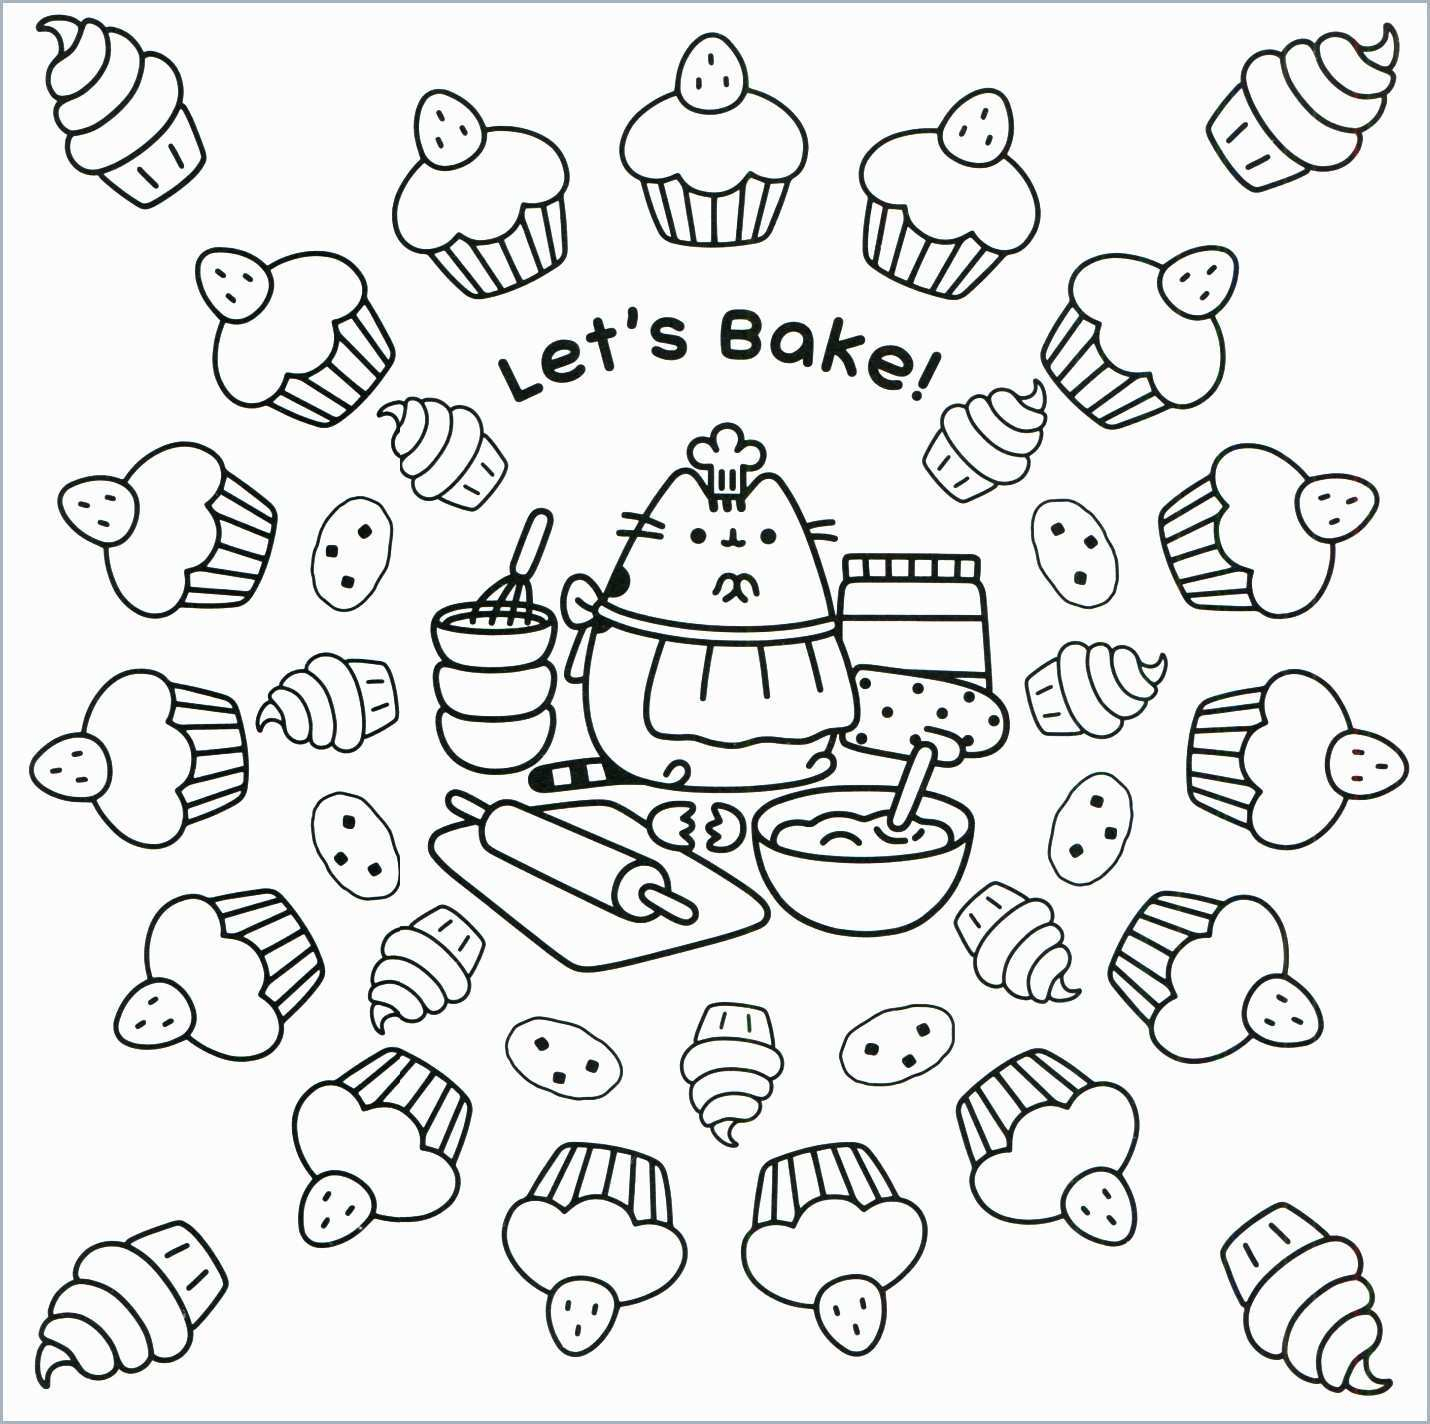 Pusheen Cat Coloring Pages Cat Coloring Pages For Kids With Coloring Pages Pusheen Cat Coloring